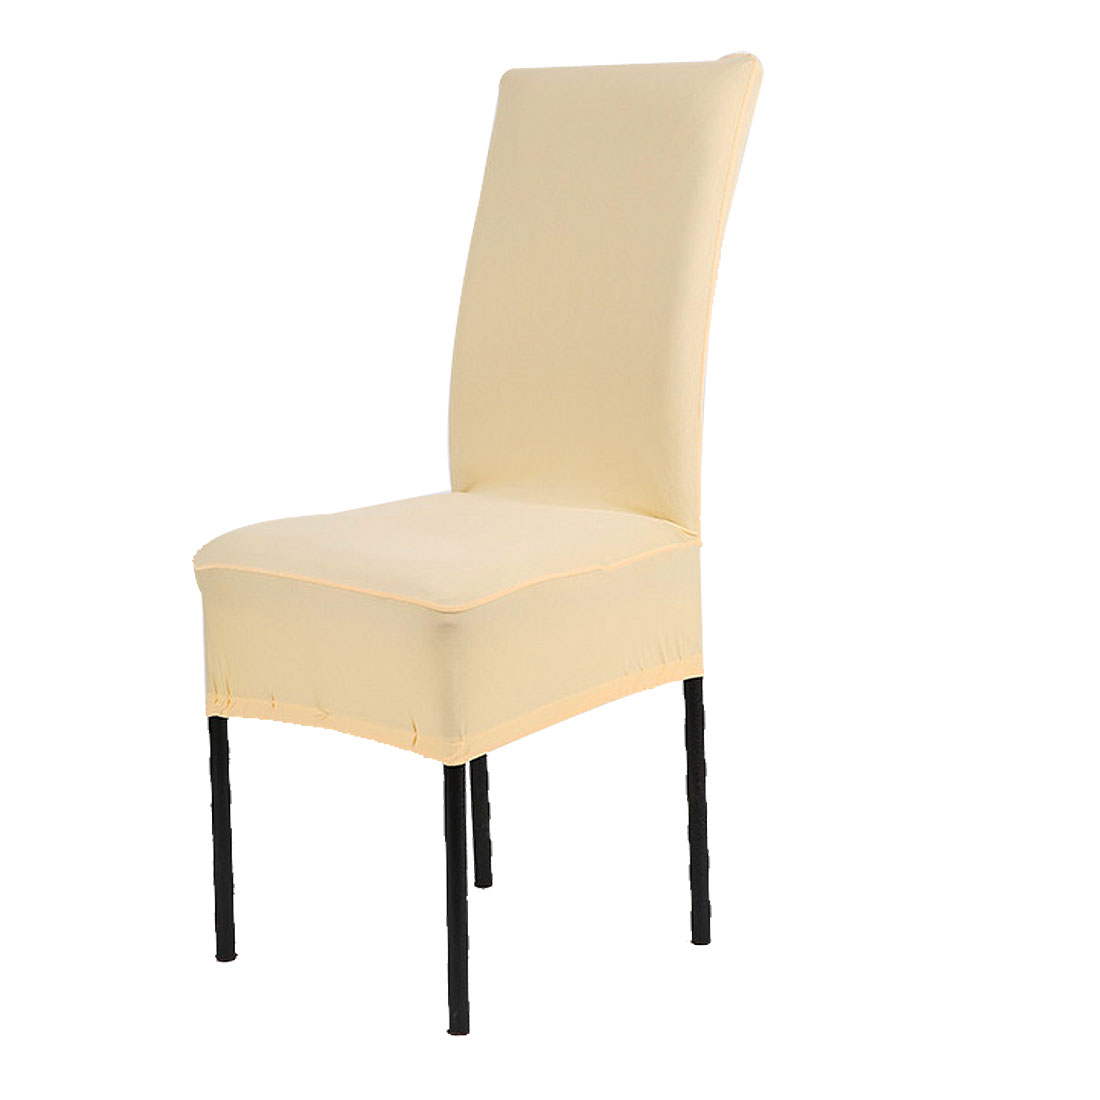 light blue dining chair covers floating for lake unique bargains spandex fabric stretch short removable